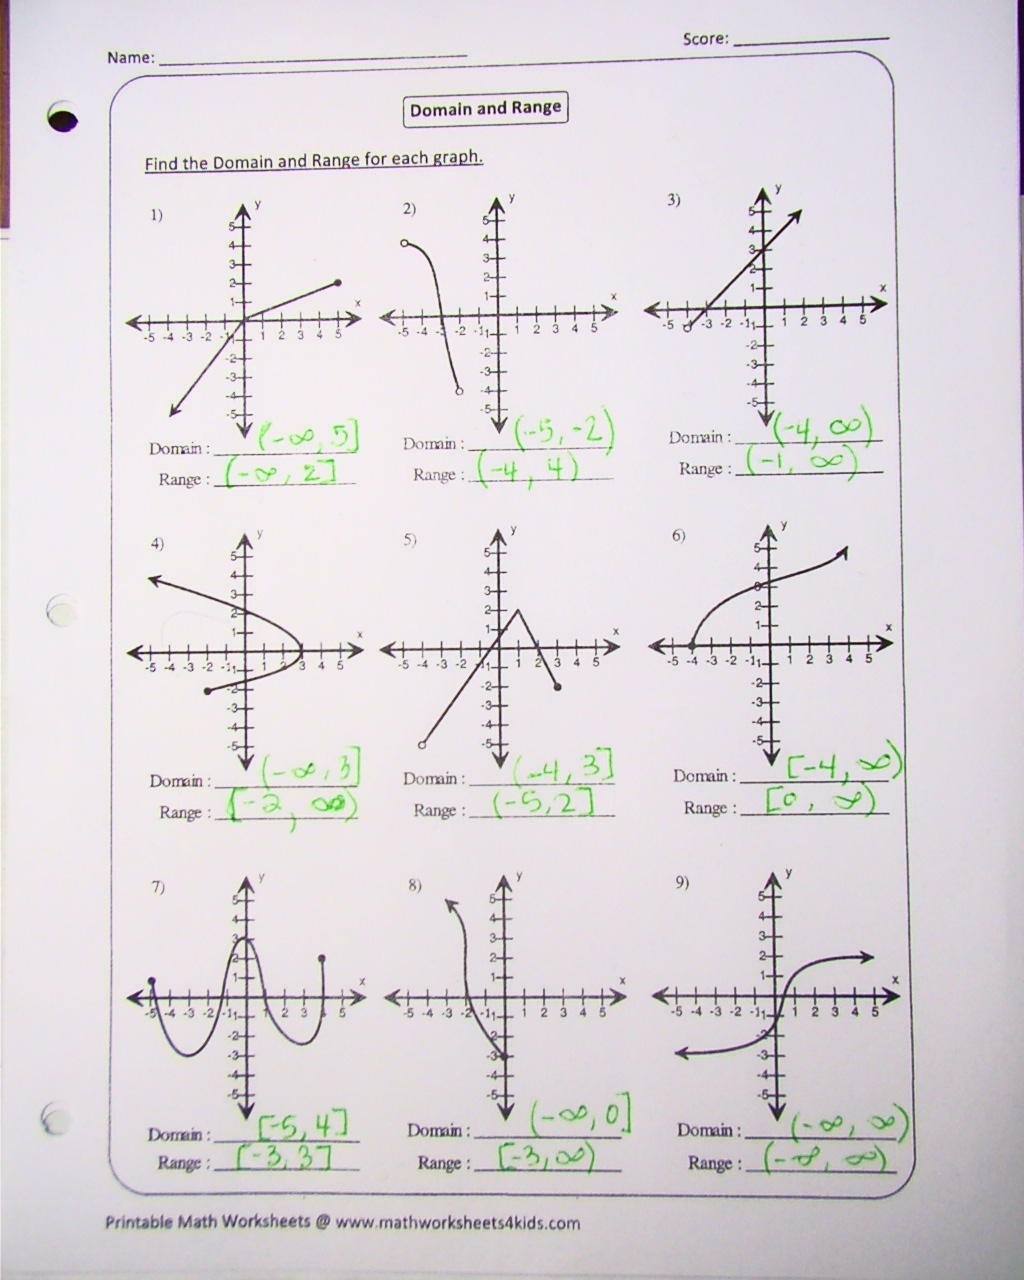 29 Domain And Range Interval Notation Worksheet With